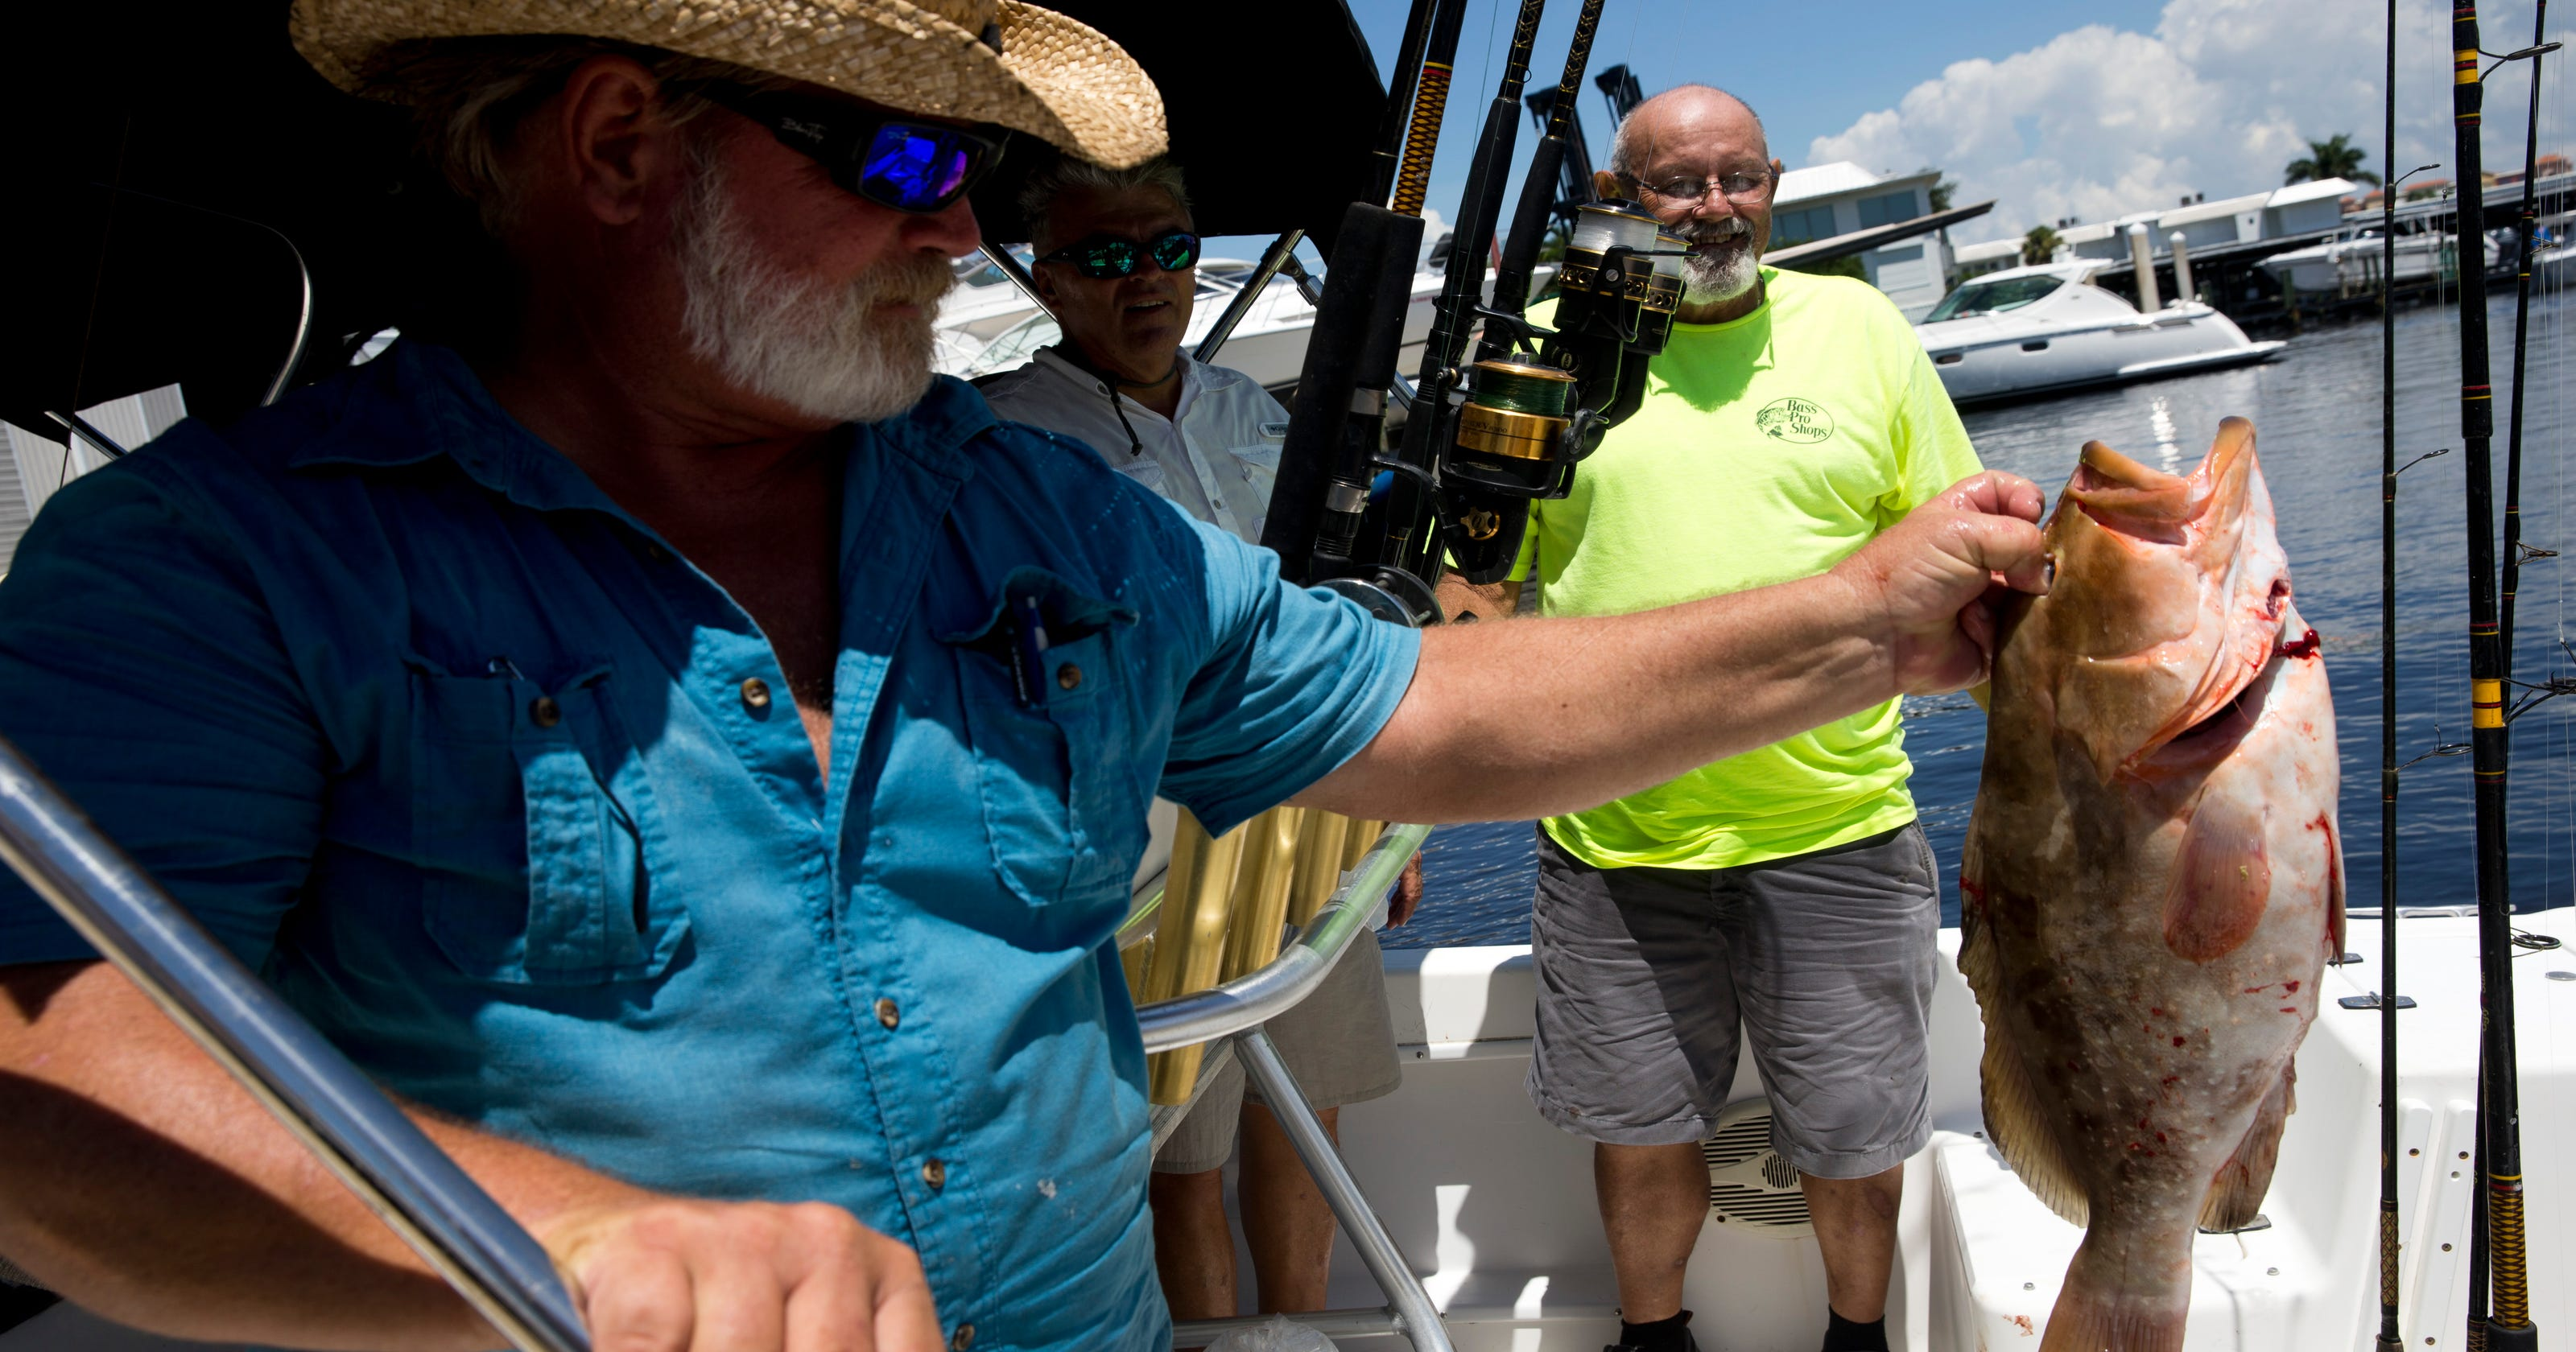 Reel fun: Vets fish, form bonds at Freedom Waters event